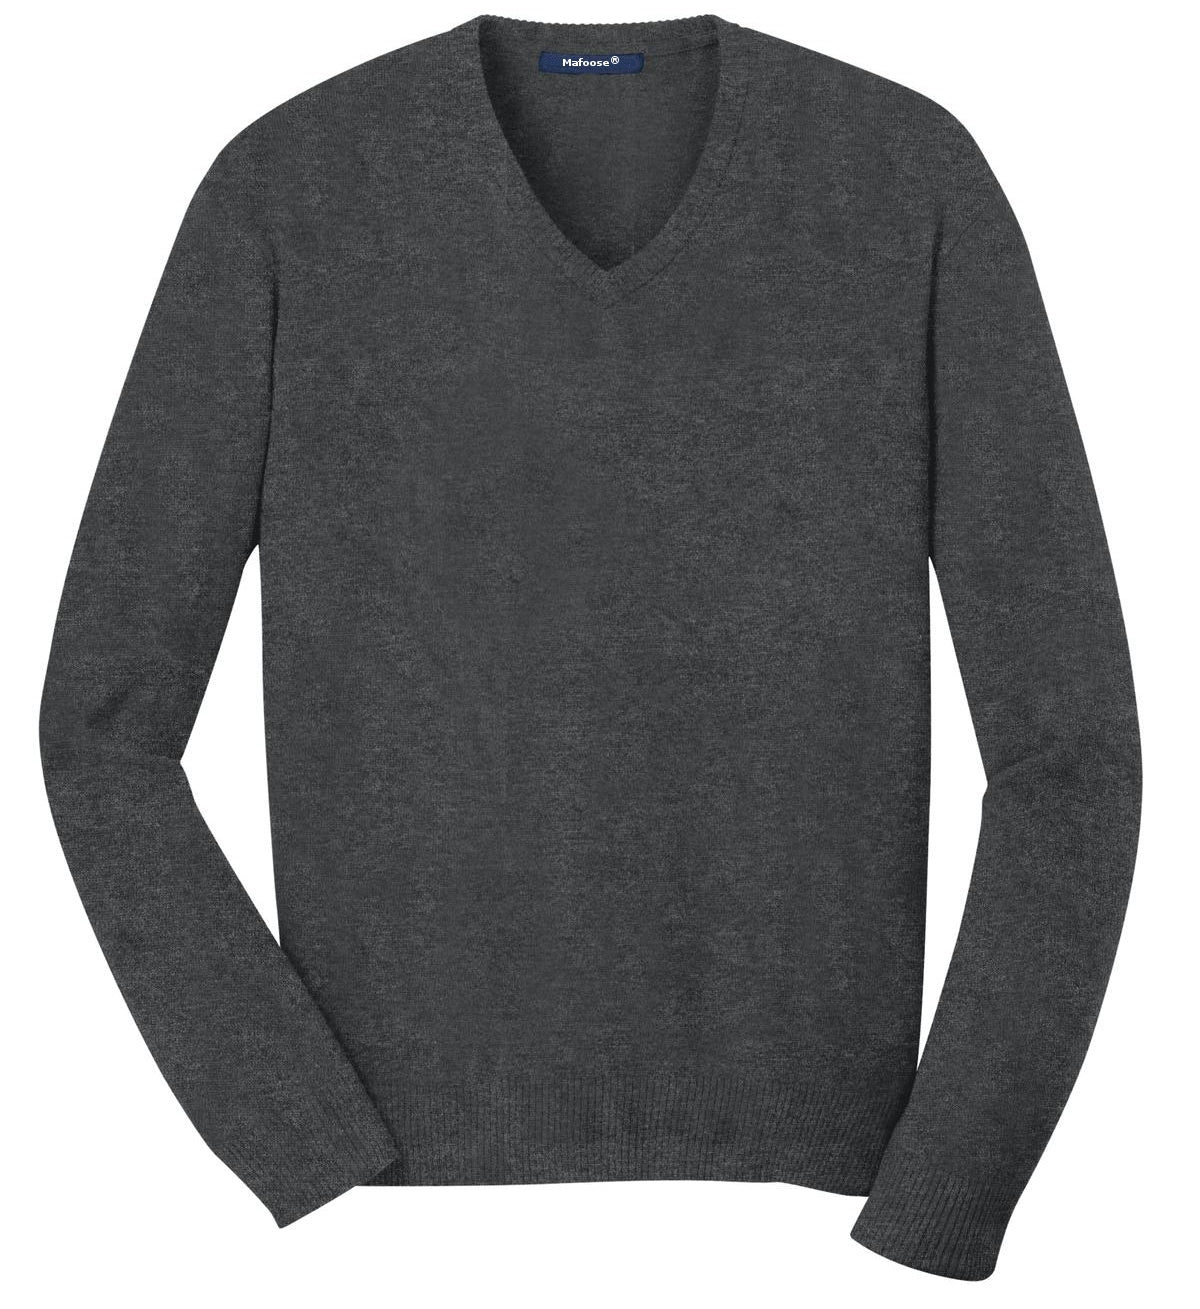 Mafoose Men's V Neck Sweater Charcoal Heather-Front